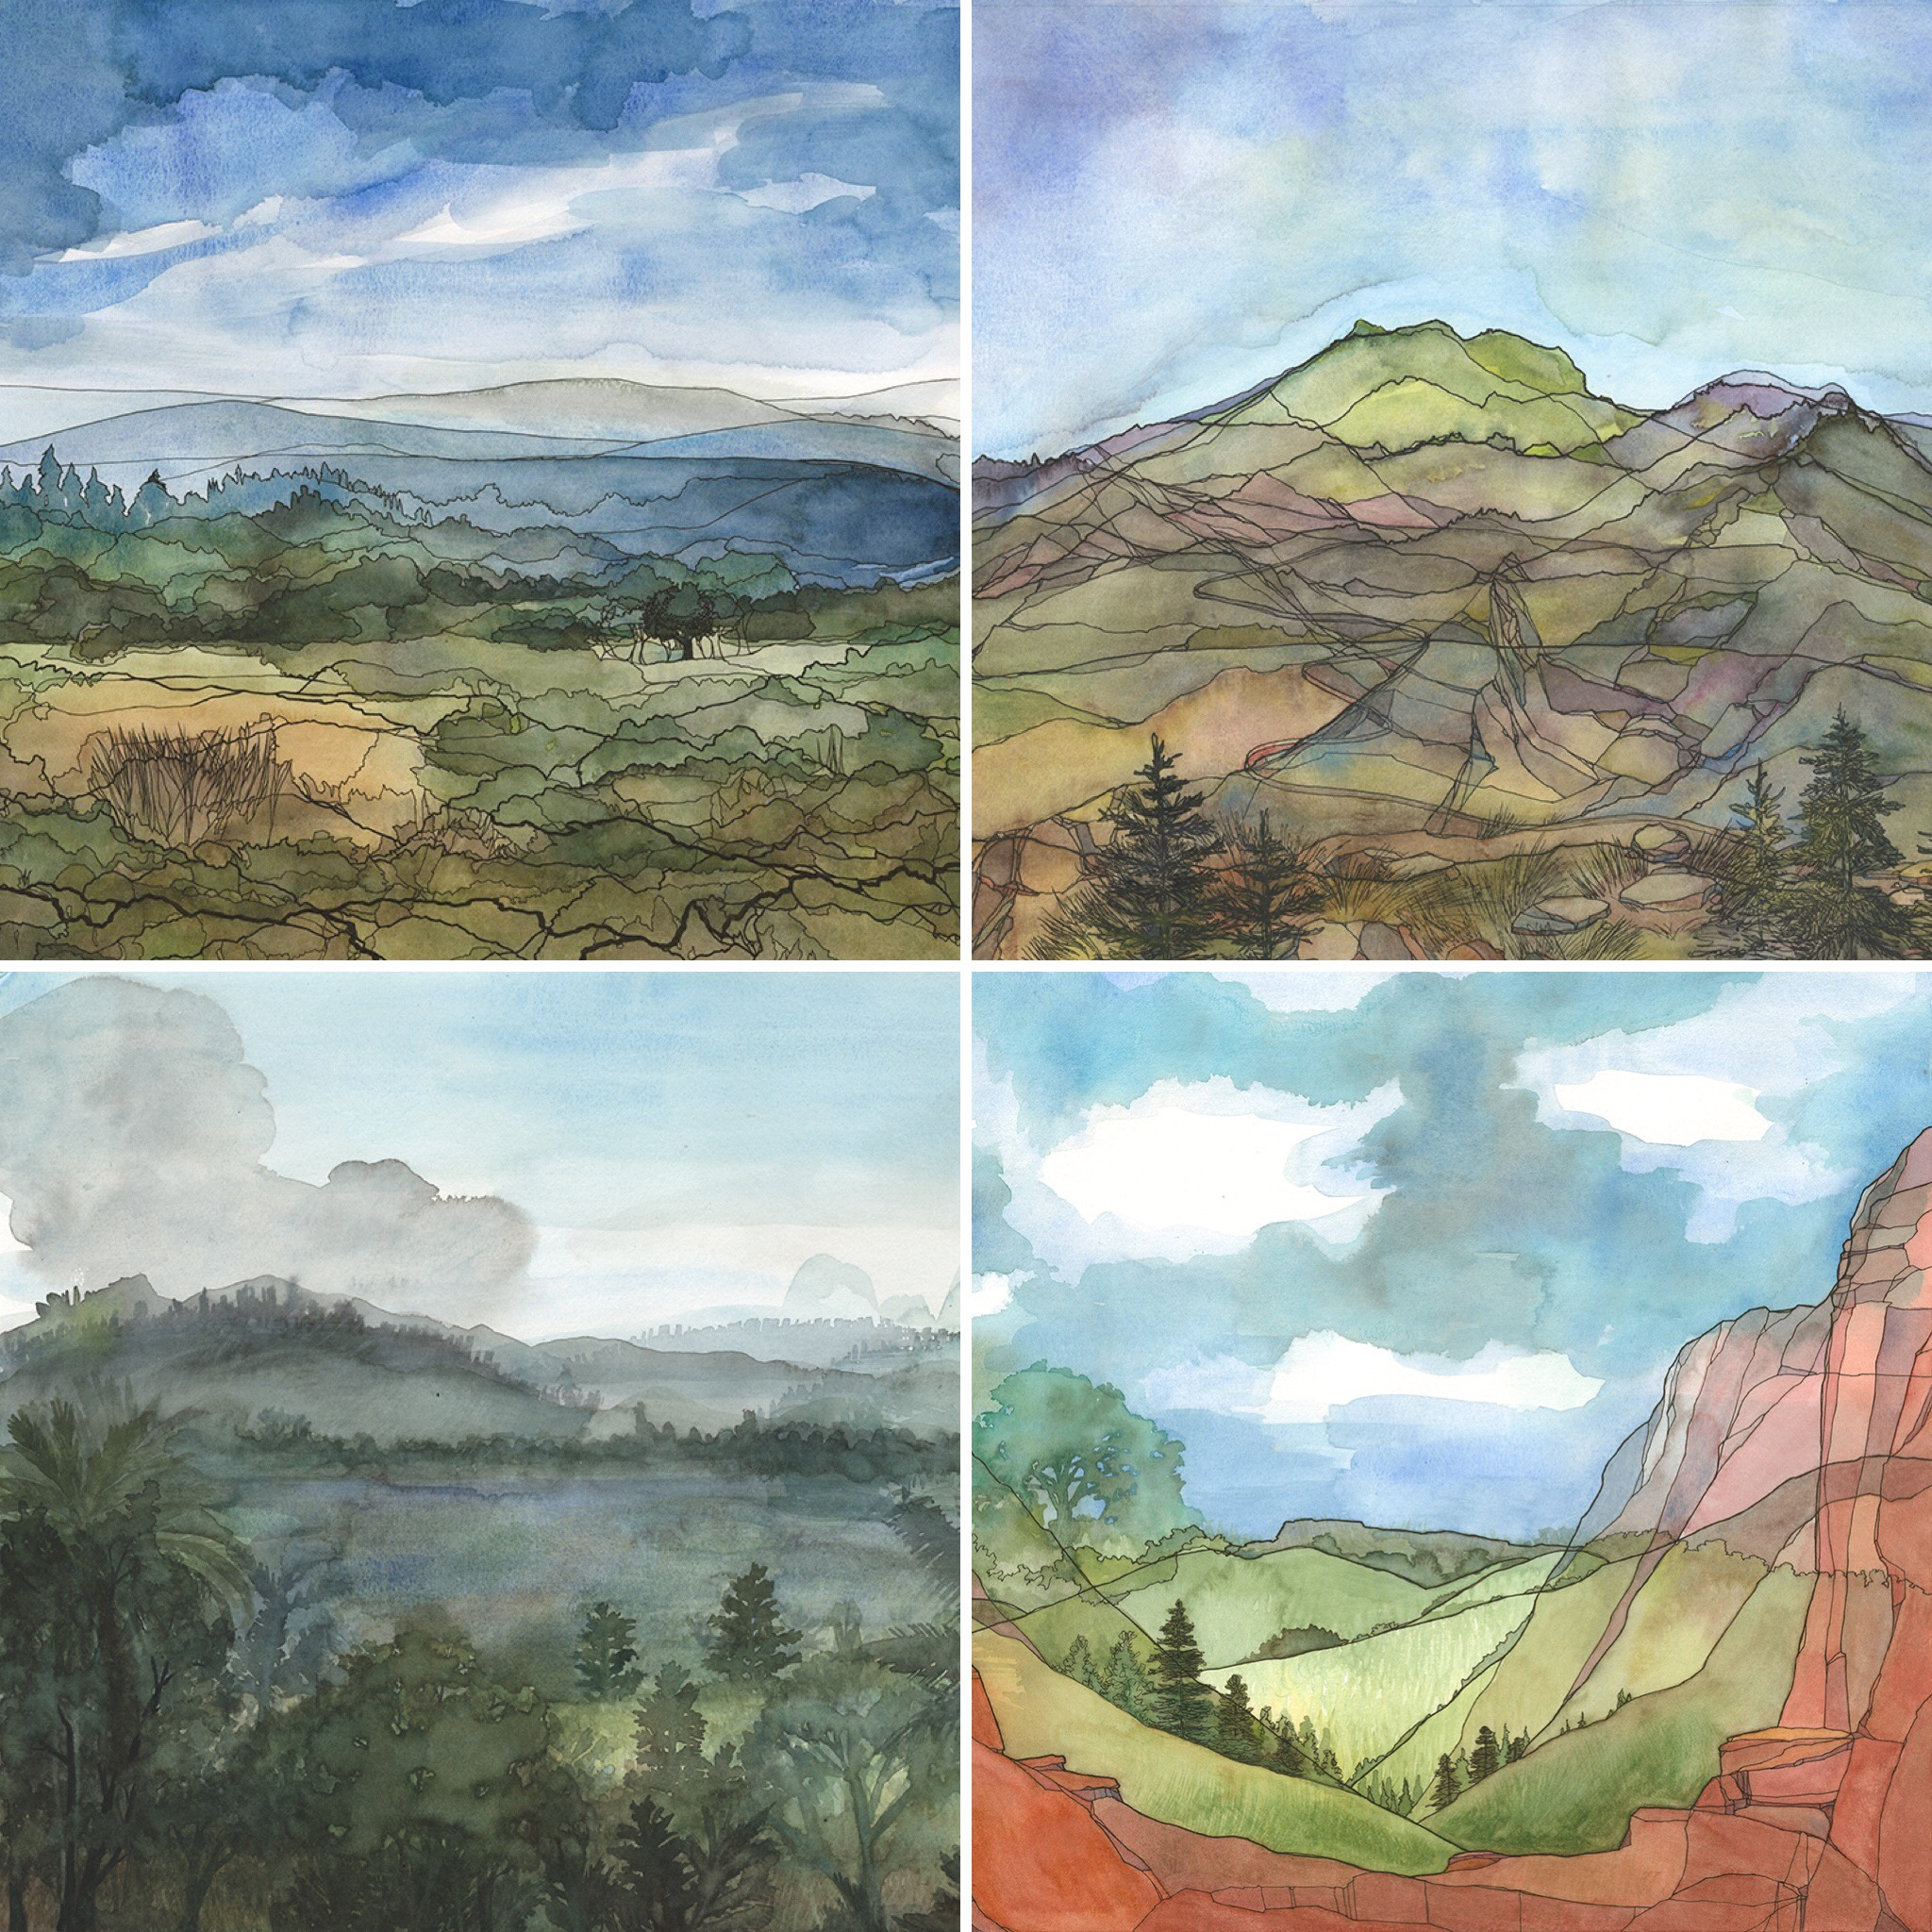 """Clockwise from top left: """"Hills"""", """"Mountains"""", """"Canyons"""", and """"Shores"""". Ink and watercolor on paper."""